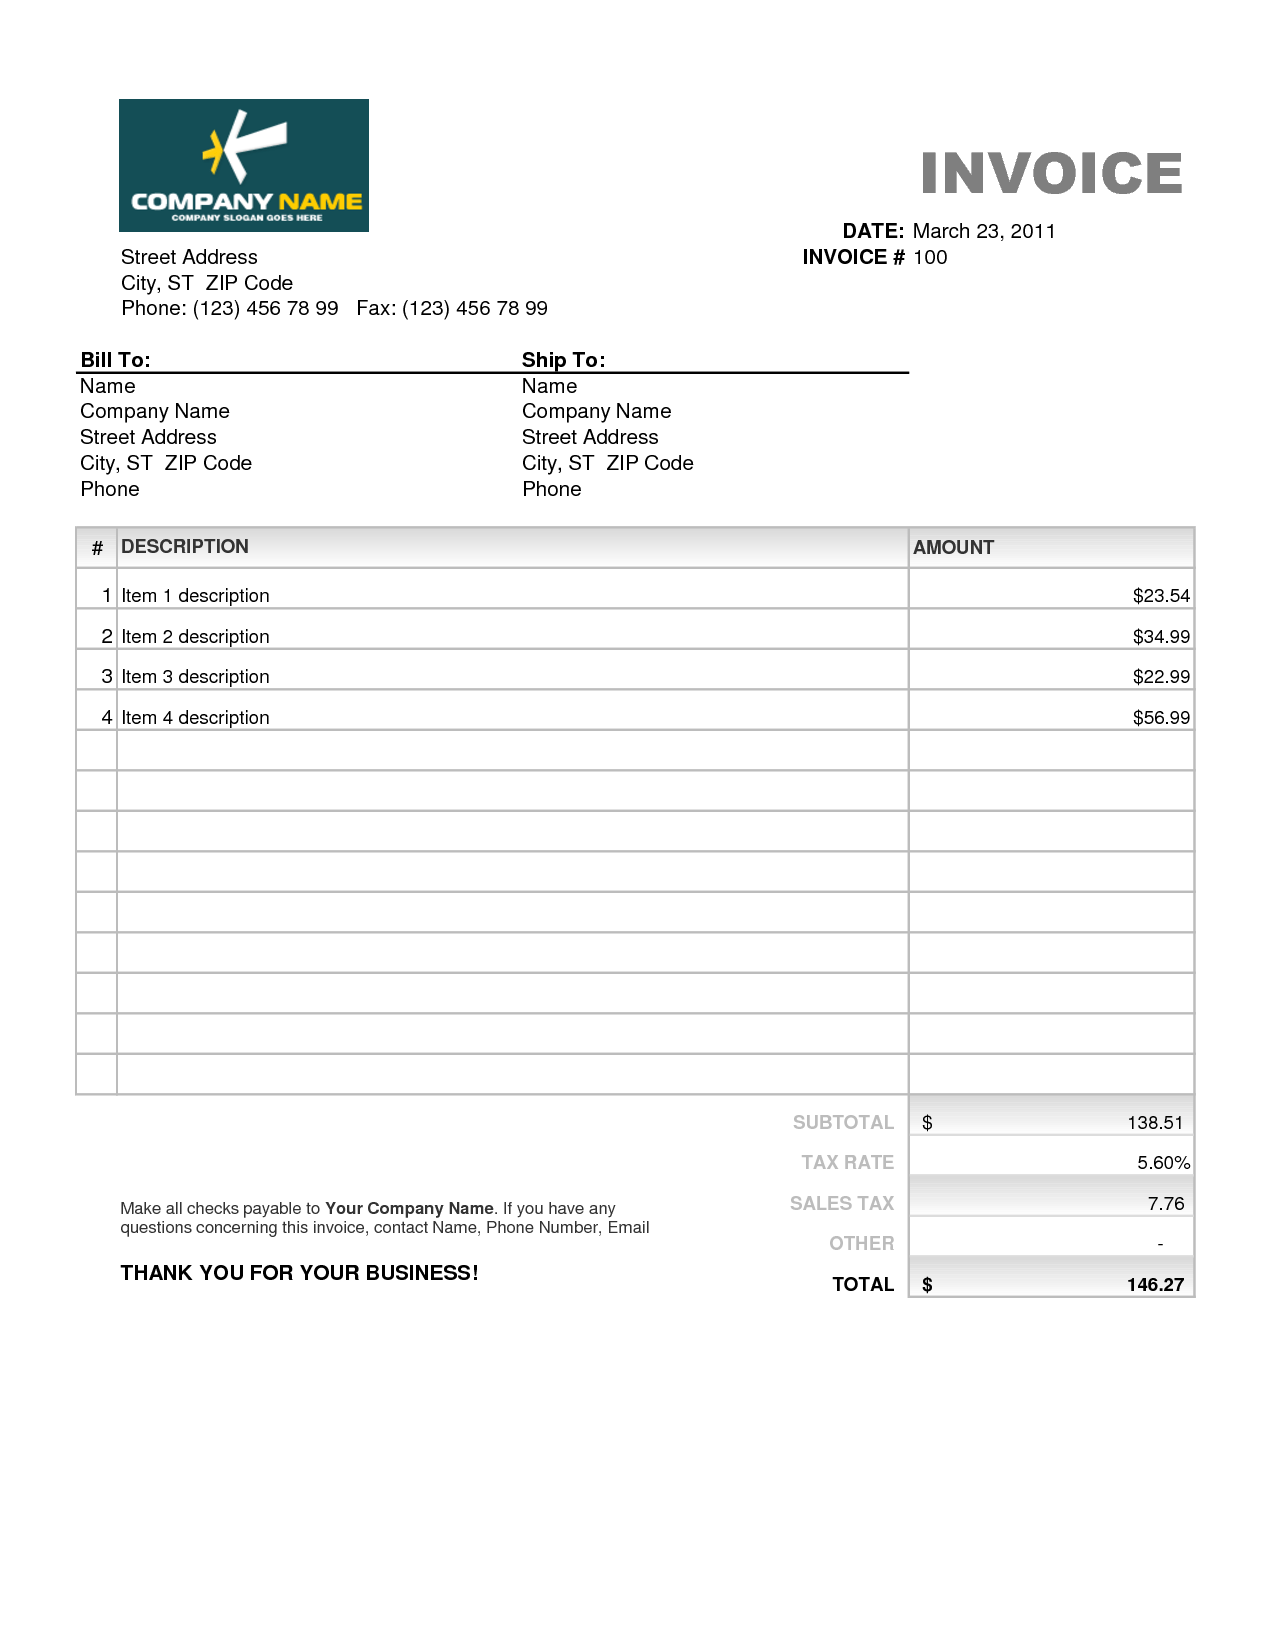 Home Health Care Invoice Template and Free Invoice Template Excel Invoice Example